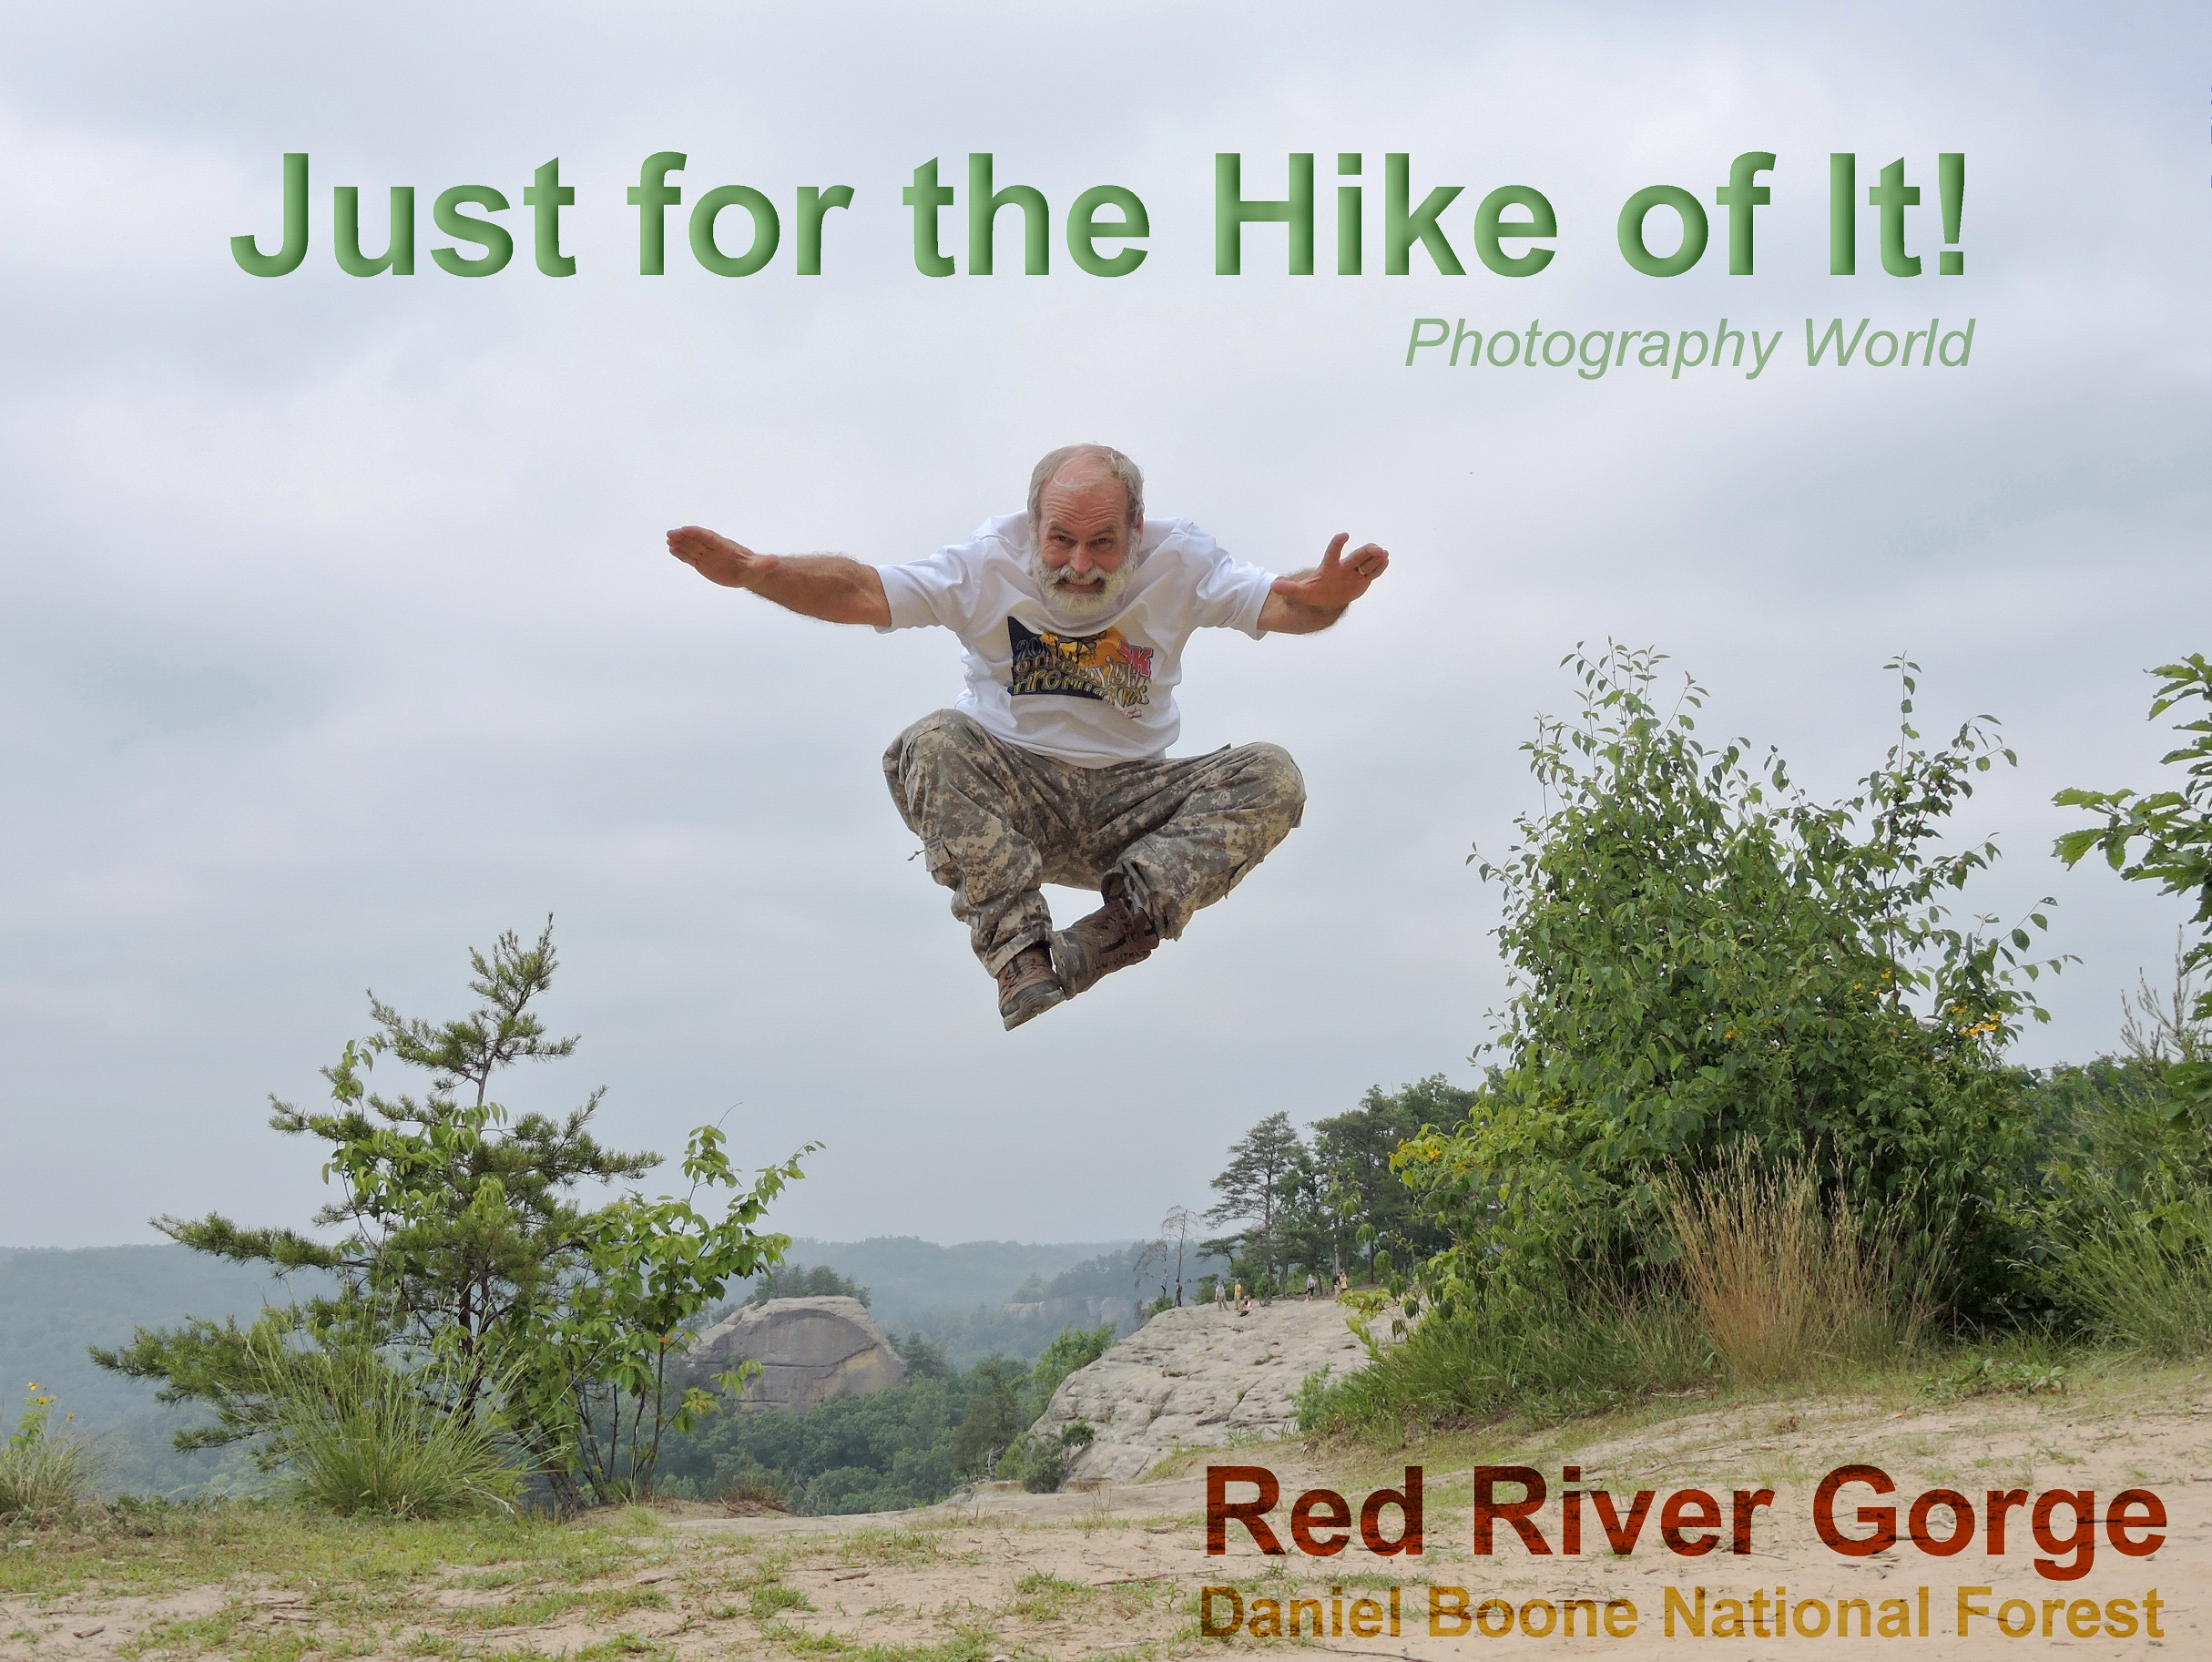 Just for the Hike of It! Cover Doug. Photography World. www.photographyworld.org